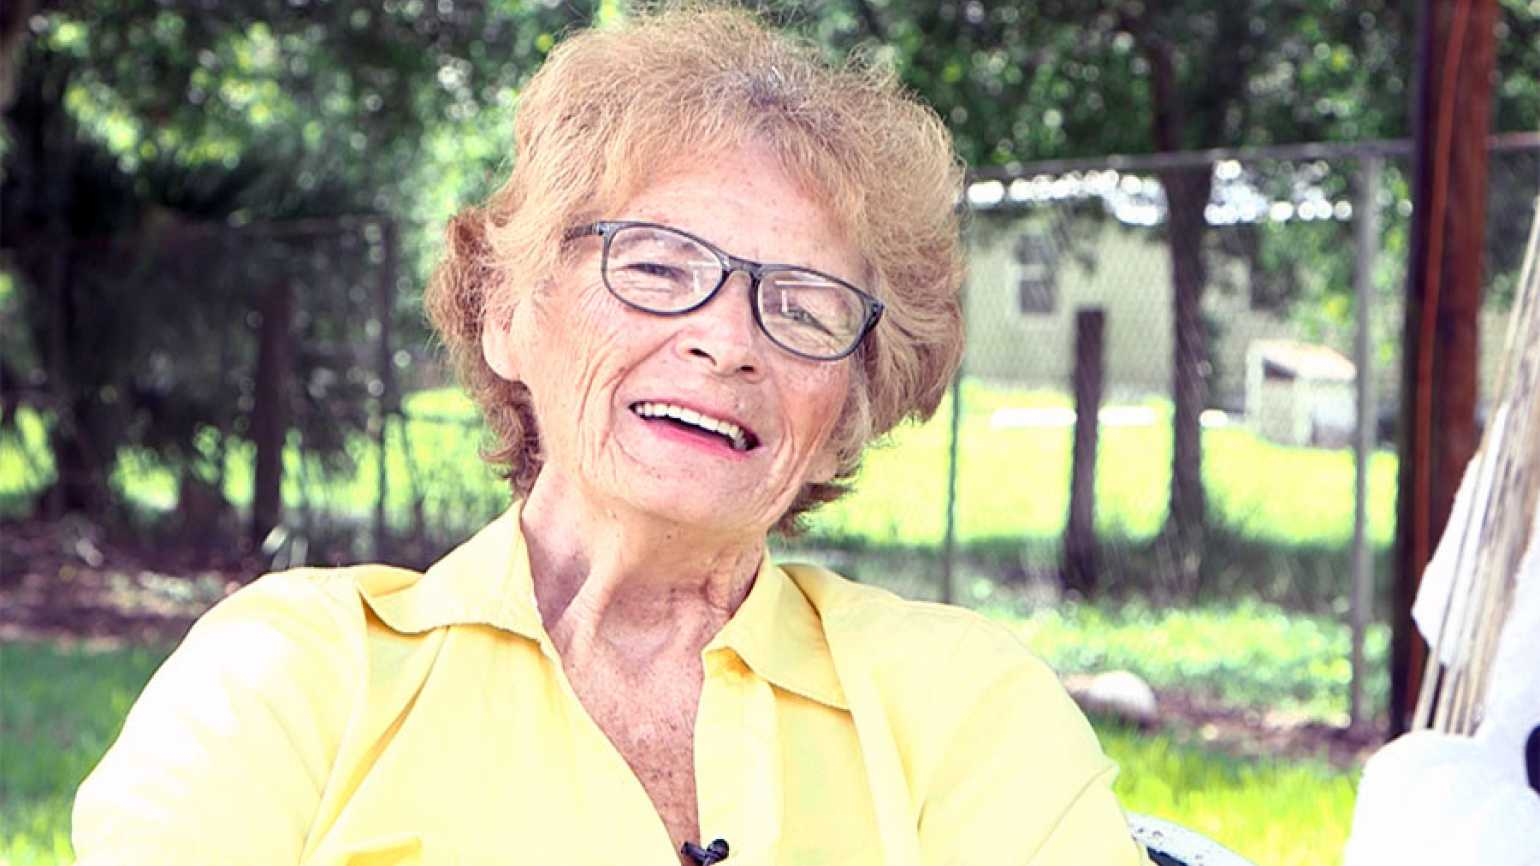 Mary Ann Franco was blind for 21 years. Listen as she talks about the miracle that restored her eyesight and what it's like to see again.